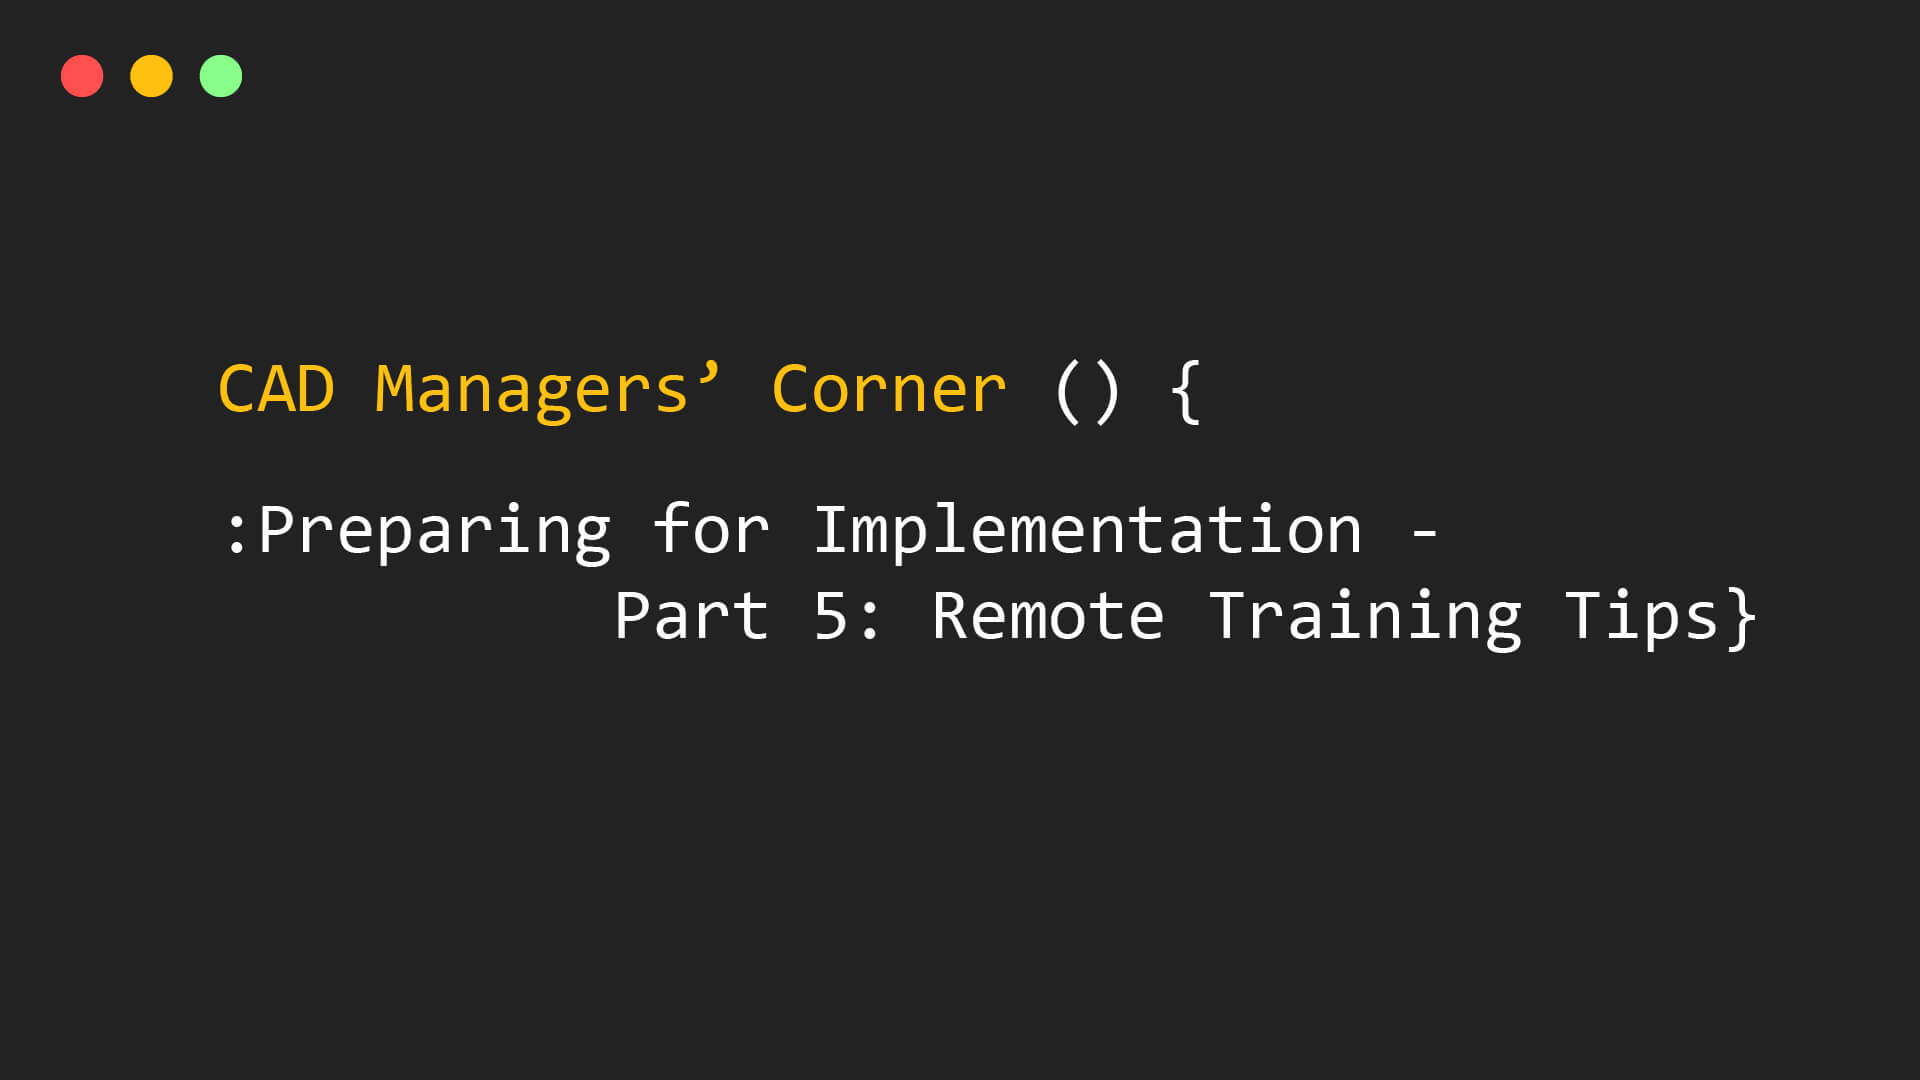 CAD Managers' Corner – Preparing for Implementation – Part 5: Remote Training Tips